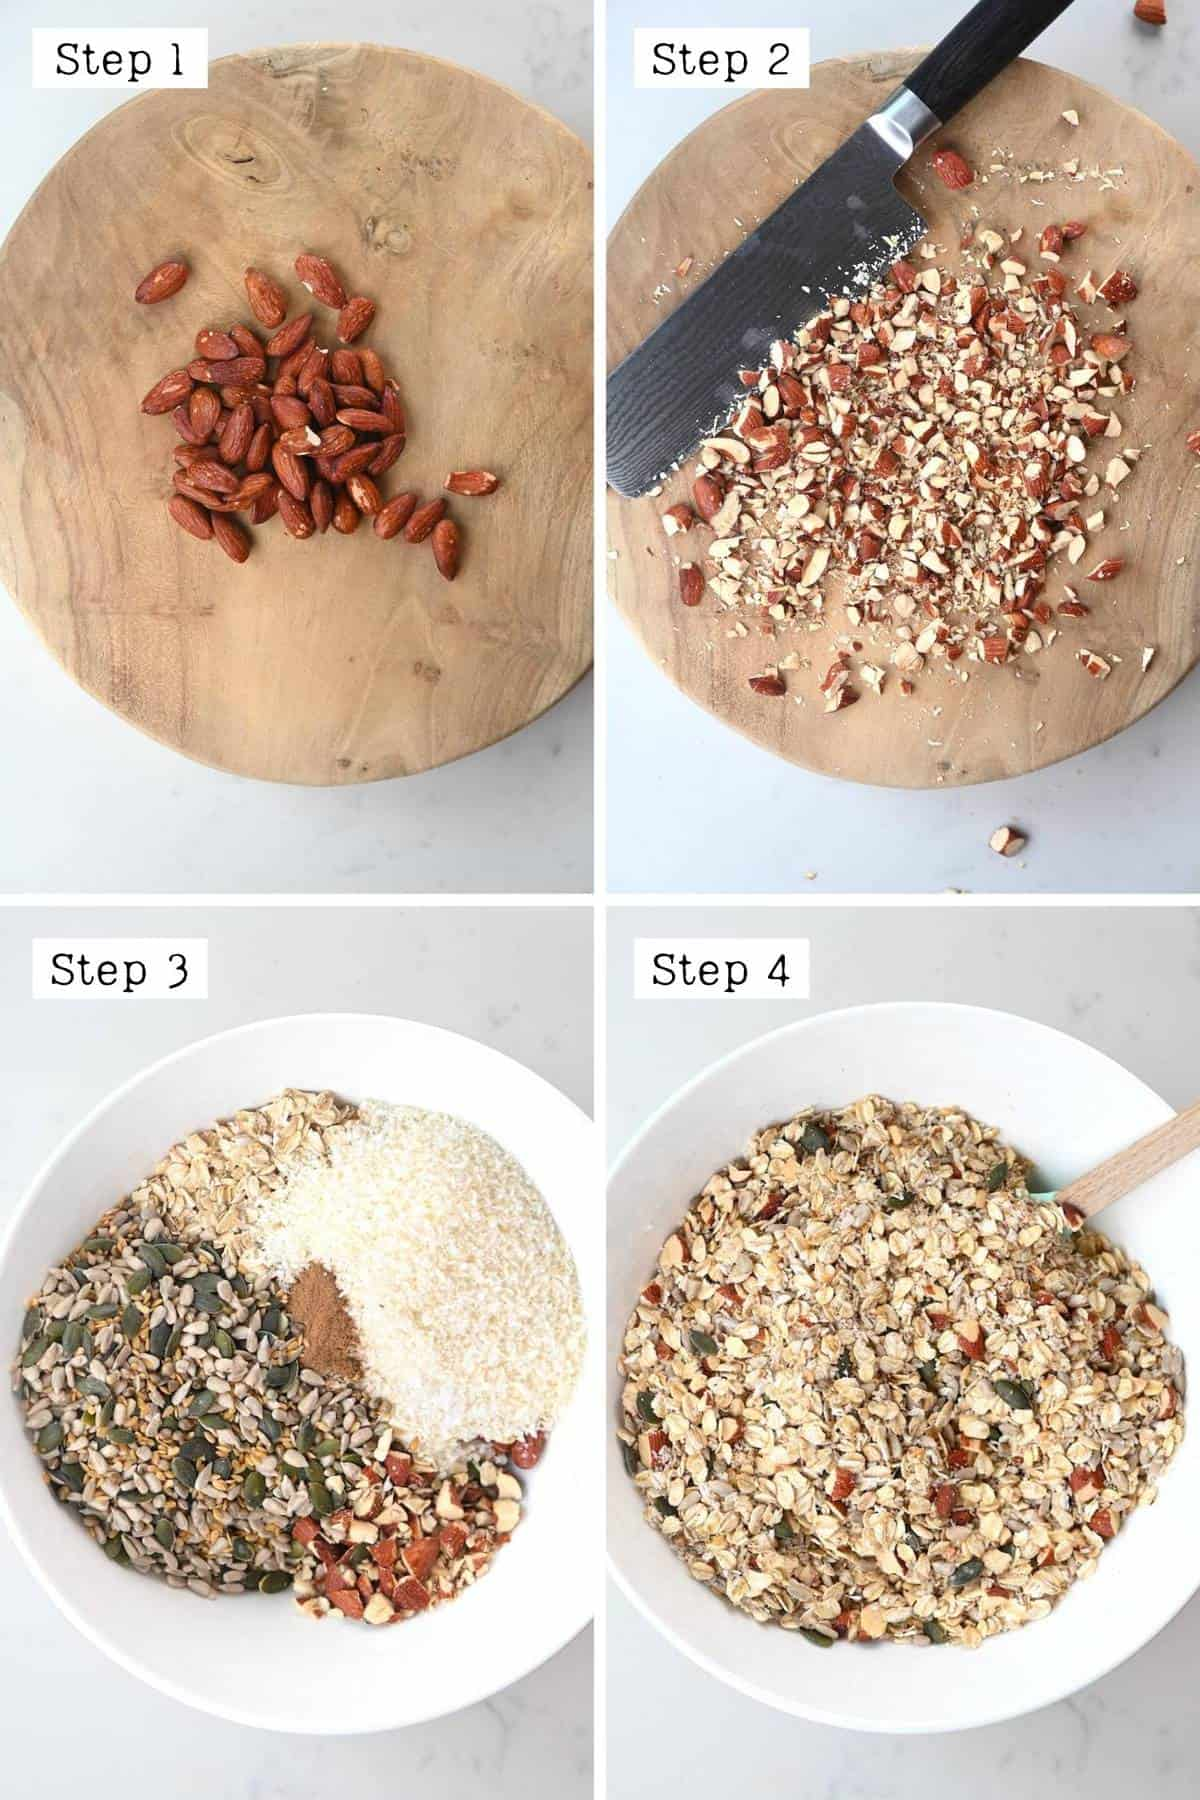 Steps for mixing the dry ingredients of the granola pizza